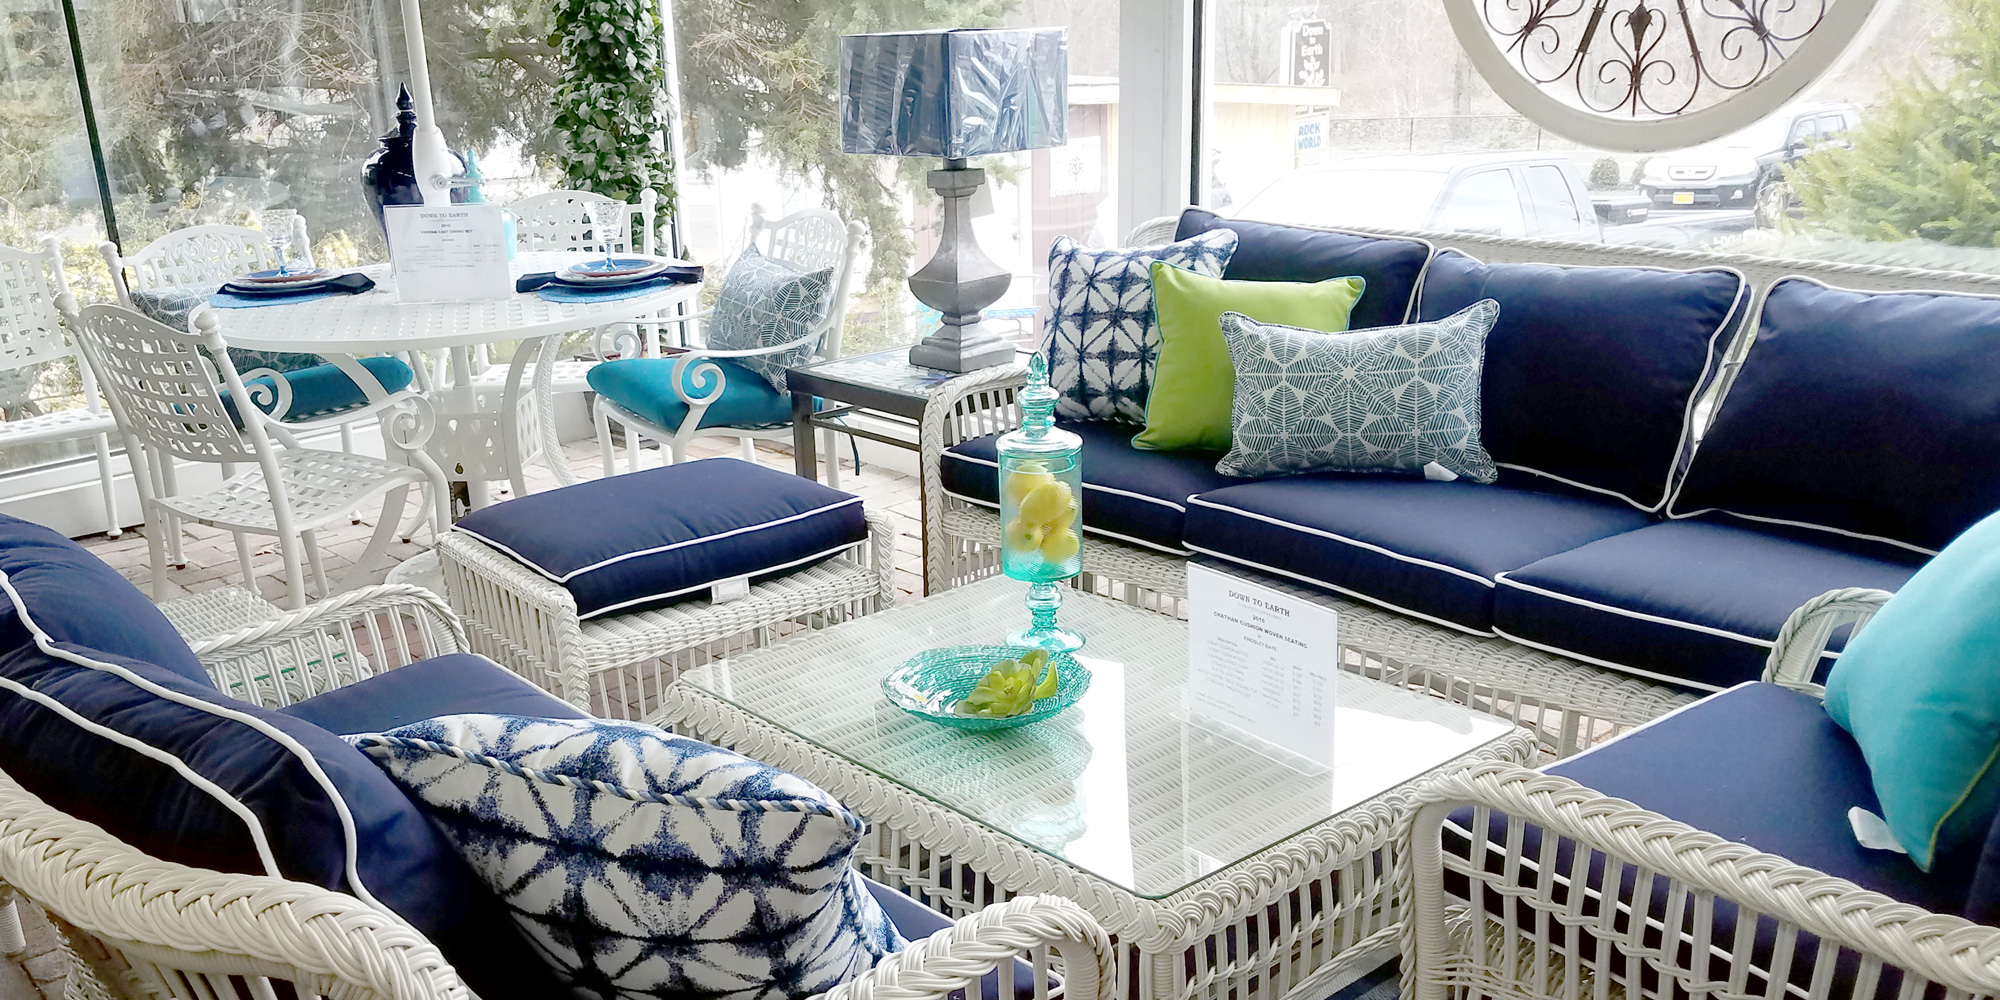 White Wicker with Blue Cushions